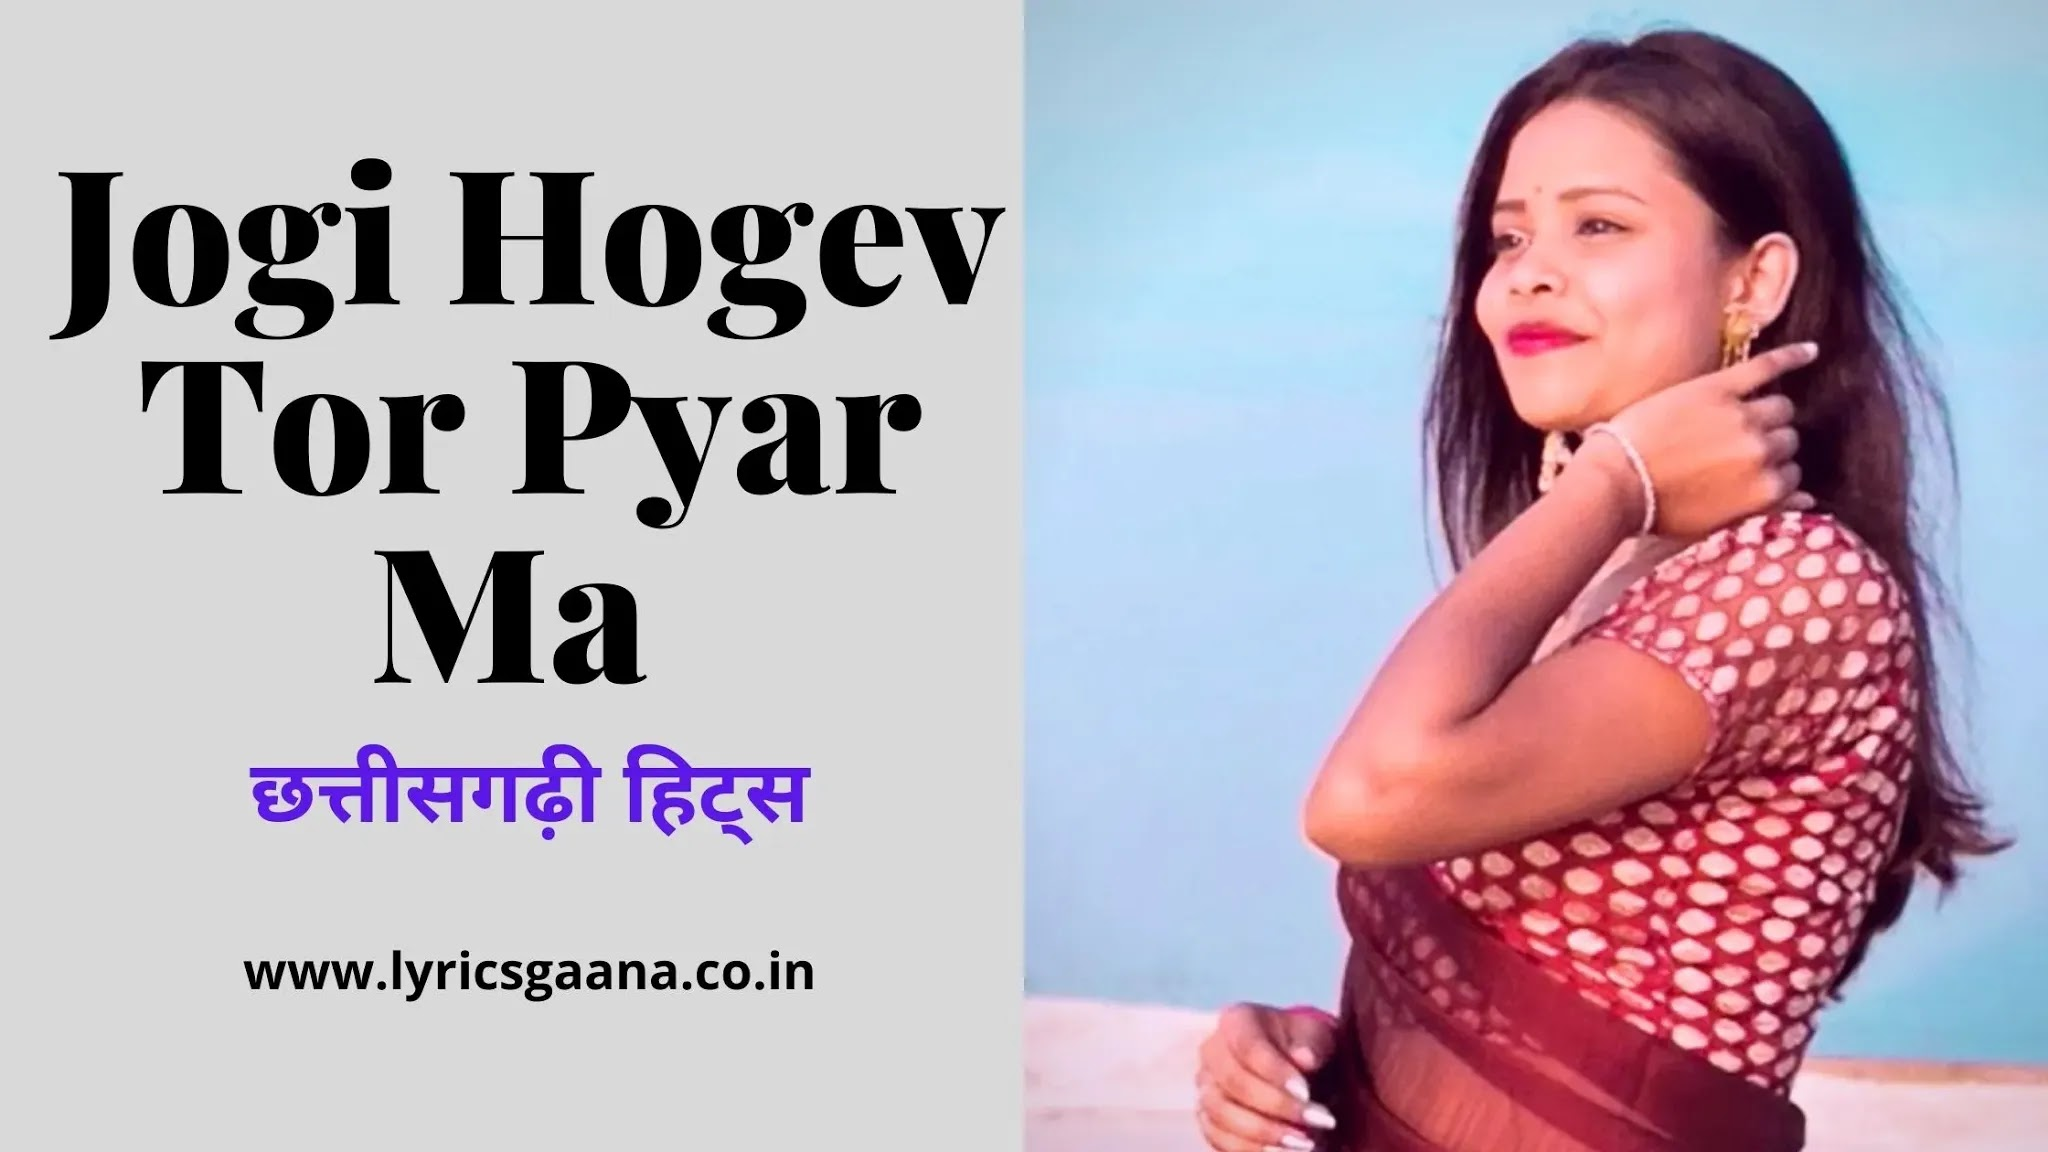 जोगी होगेंव | Jogi Hogev Tor Pyar Ma | New Cg Song Lyrics 2020